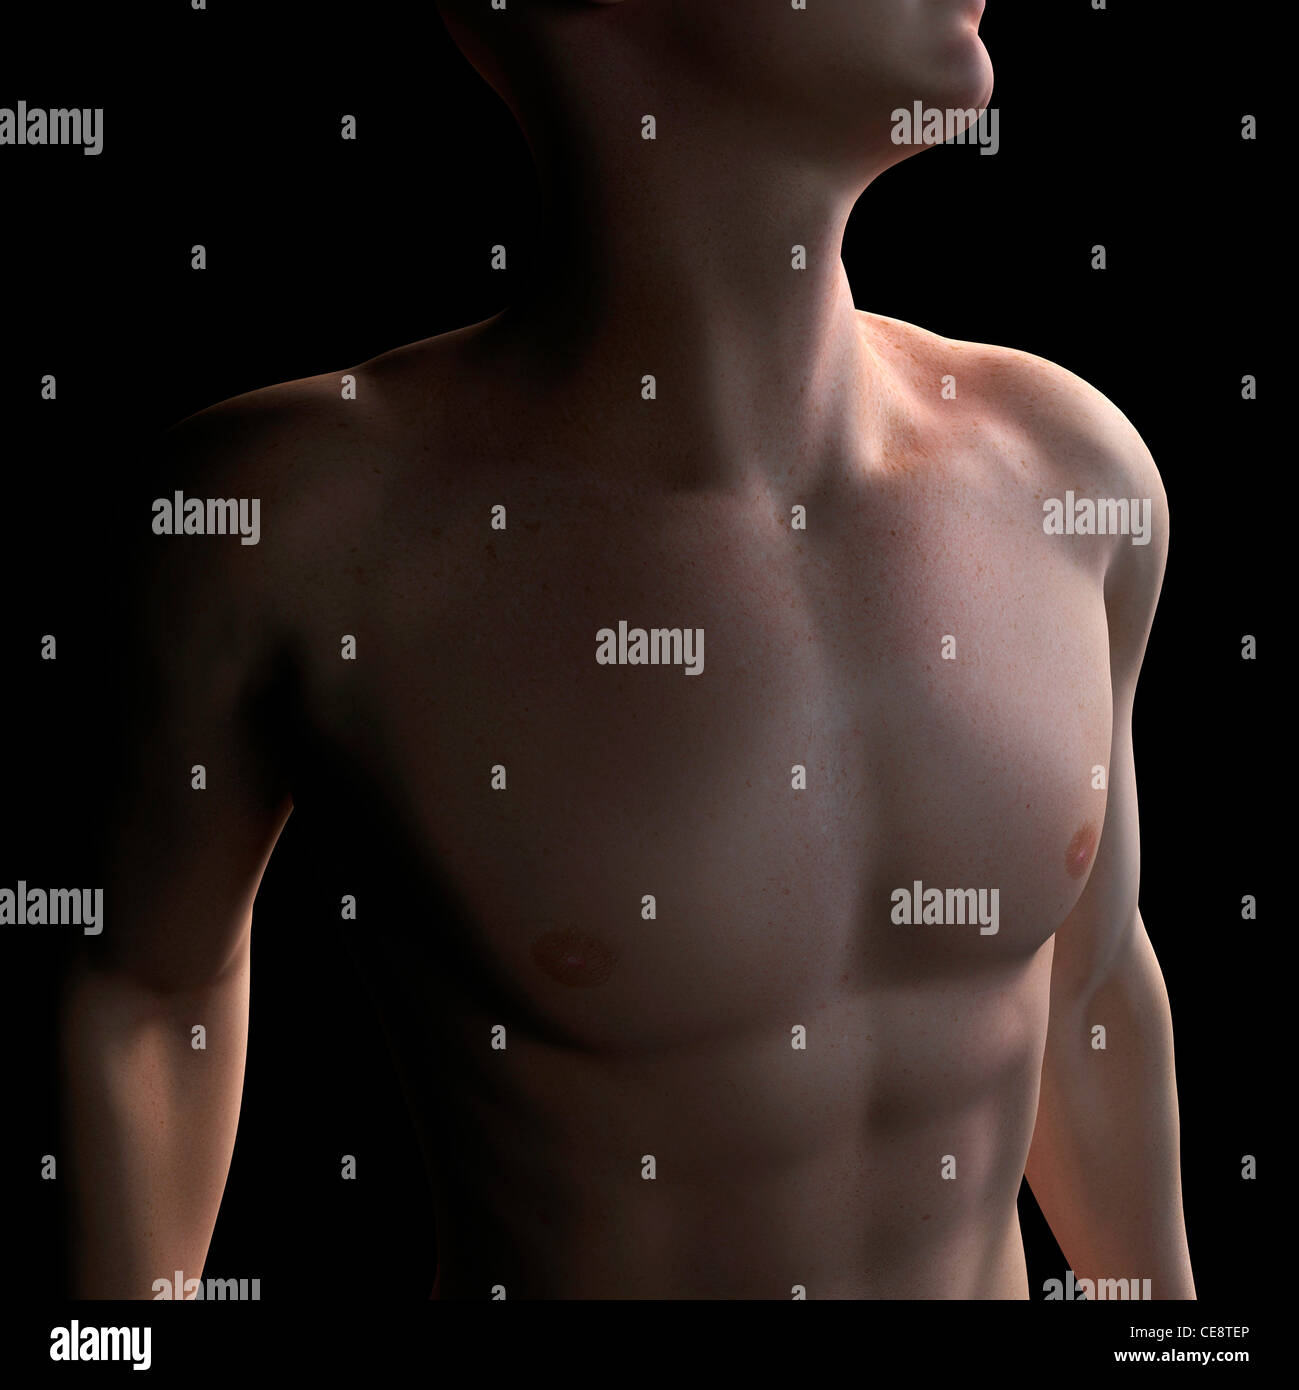 Male torso, computer artwork. - Stock Image